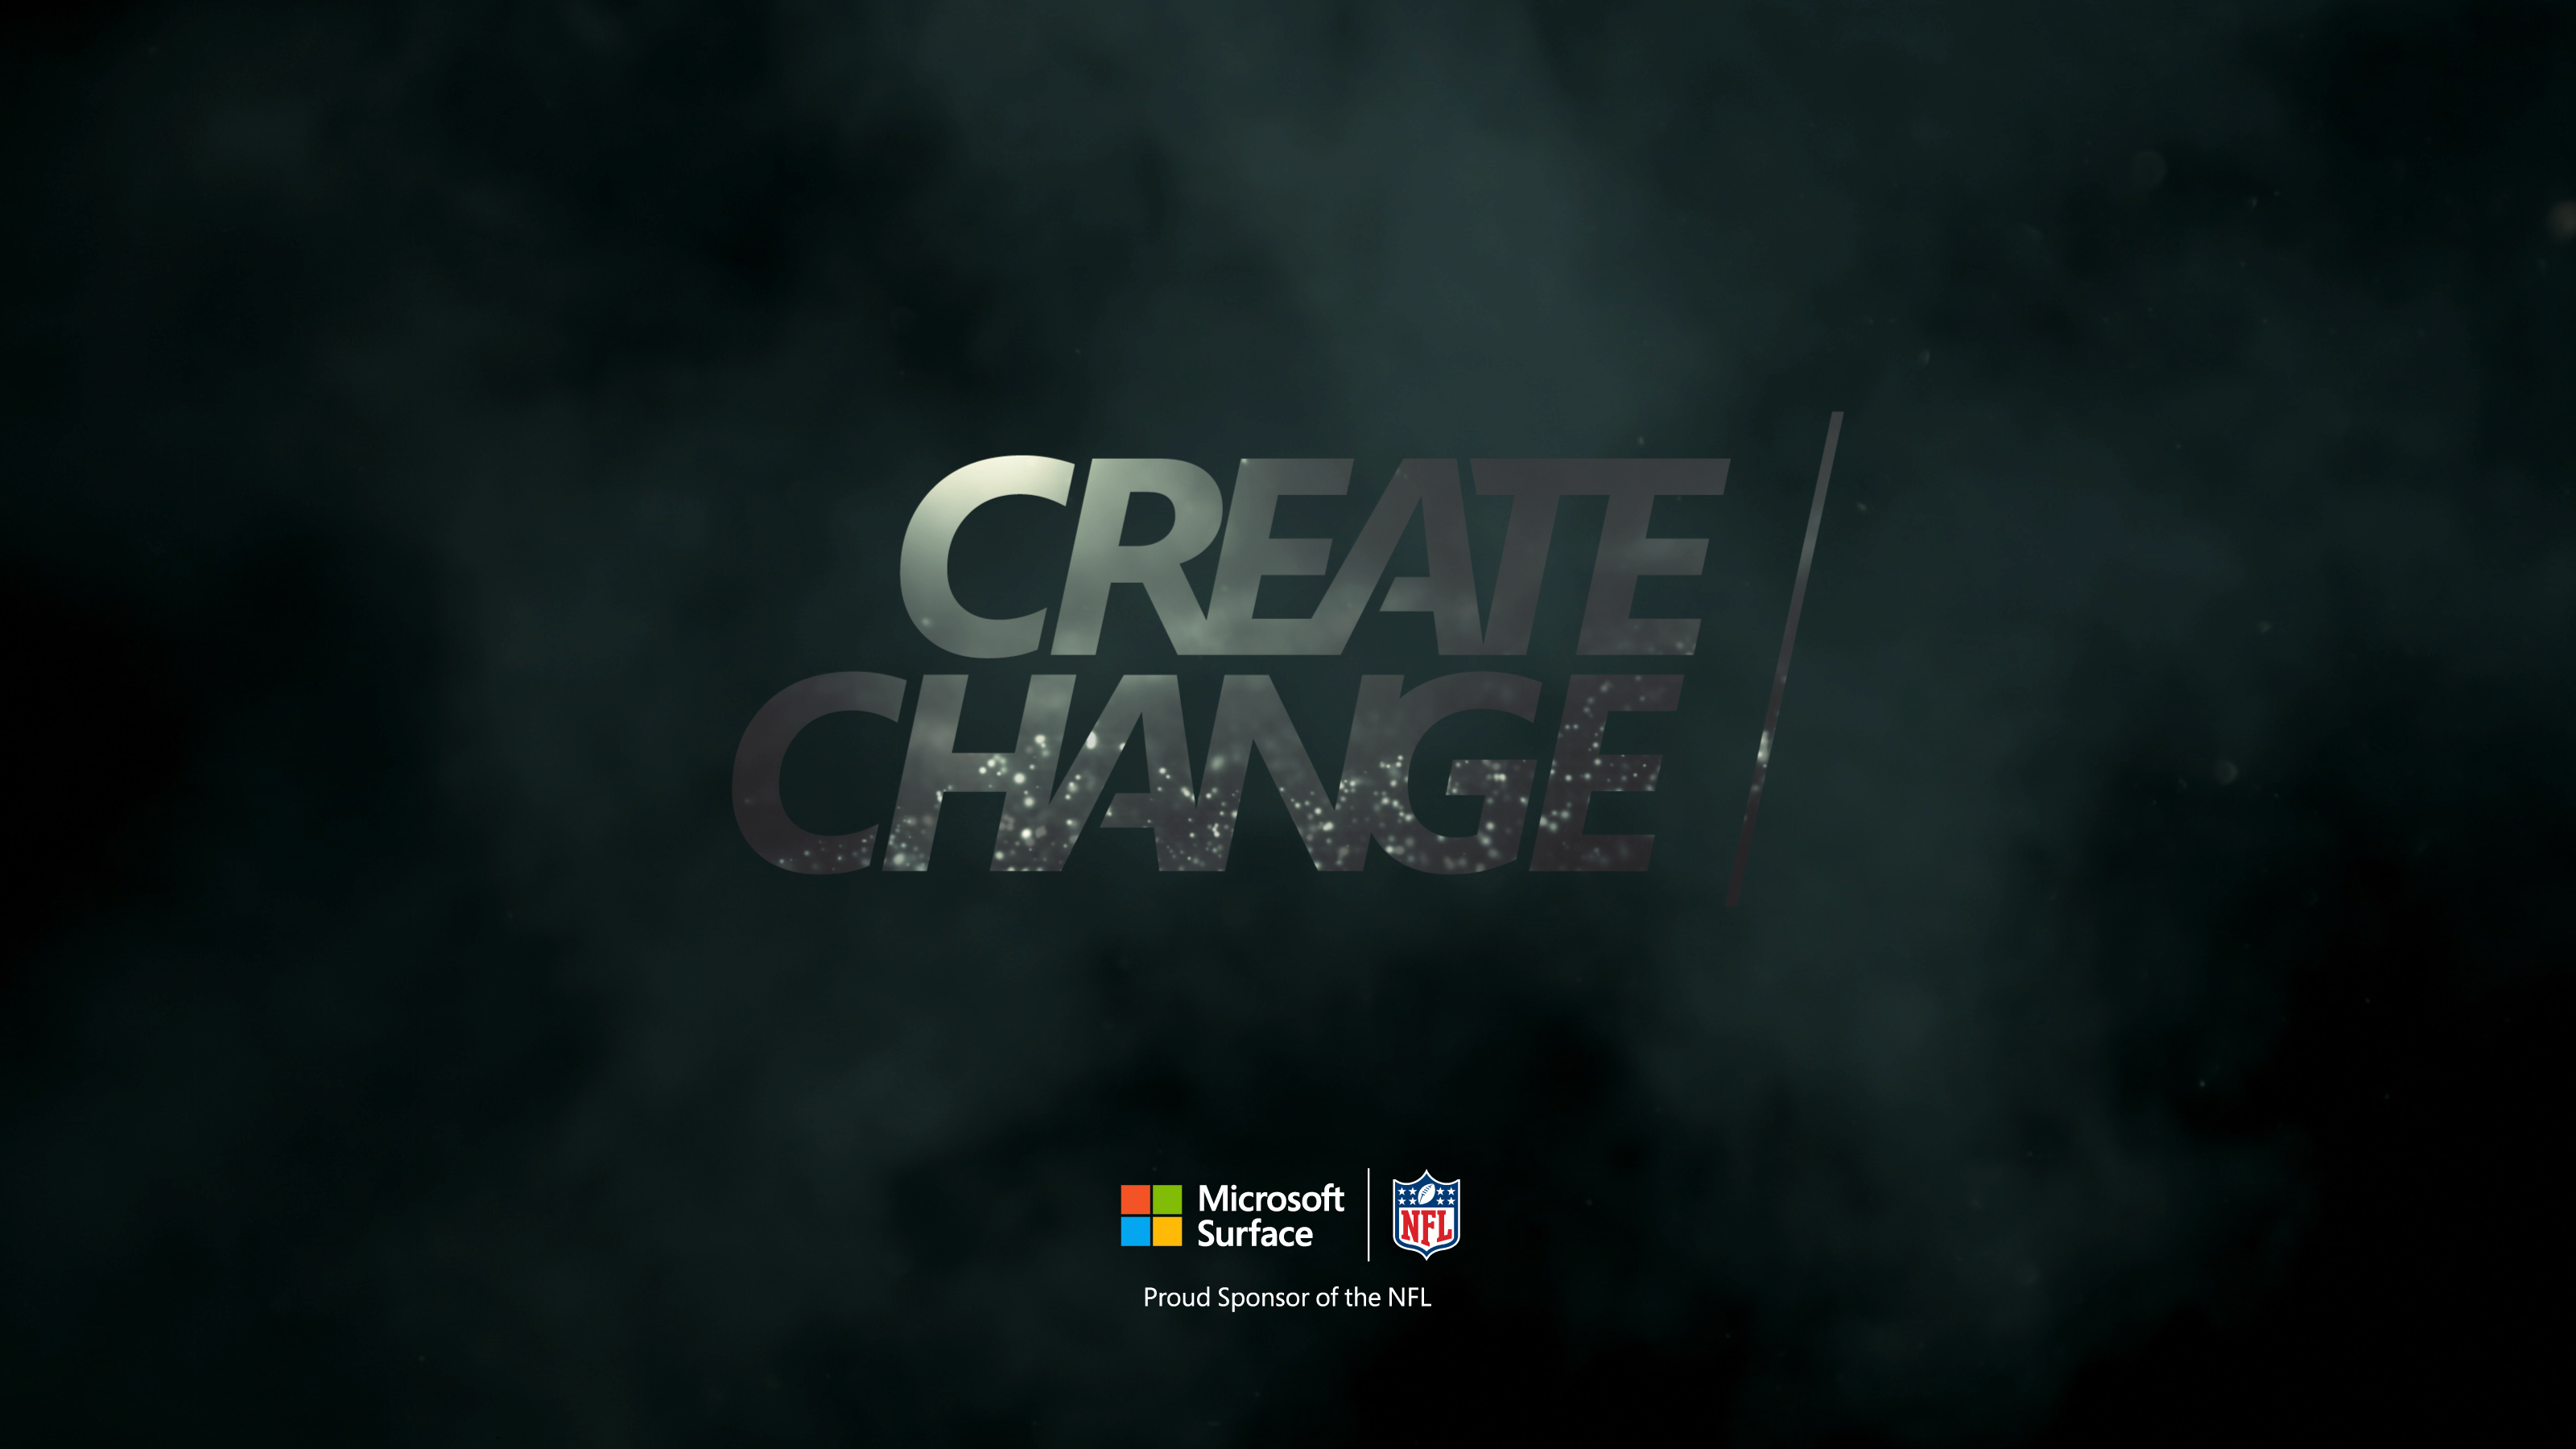 Image Media for Microsoft Create Change